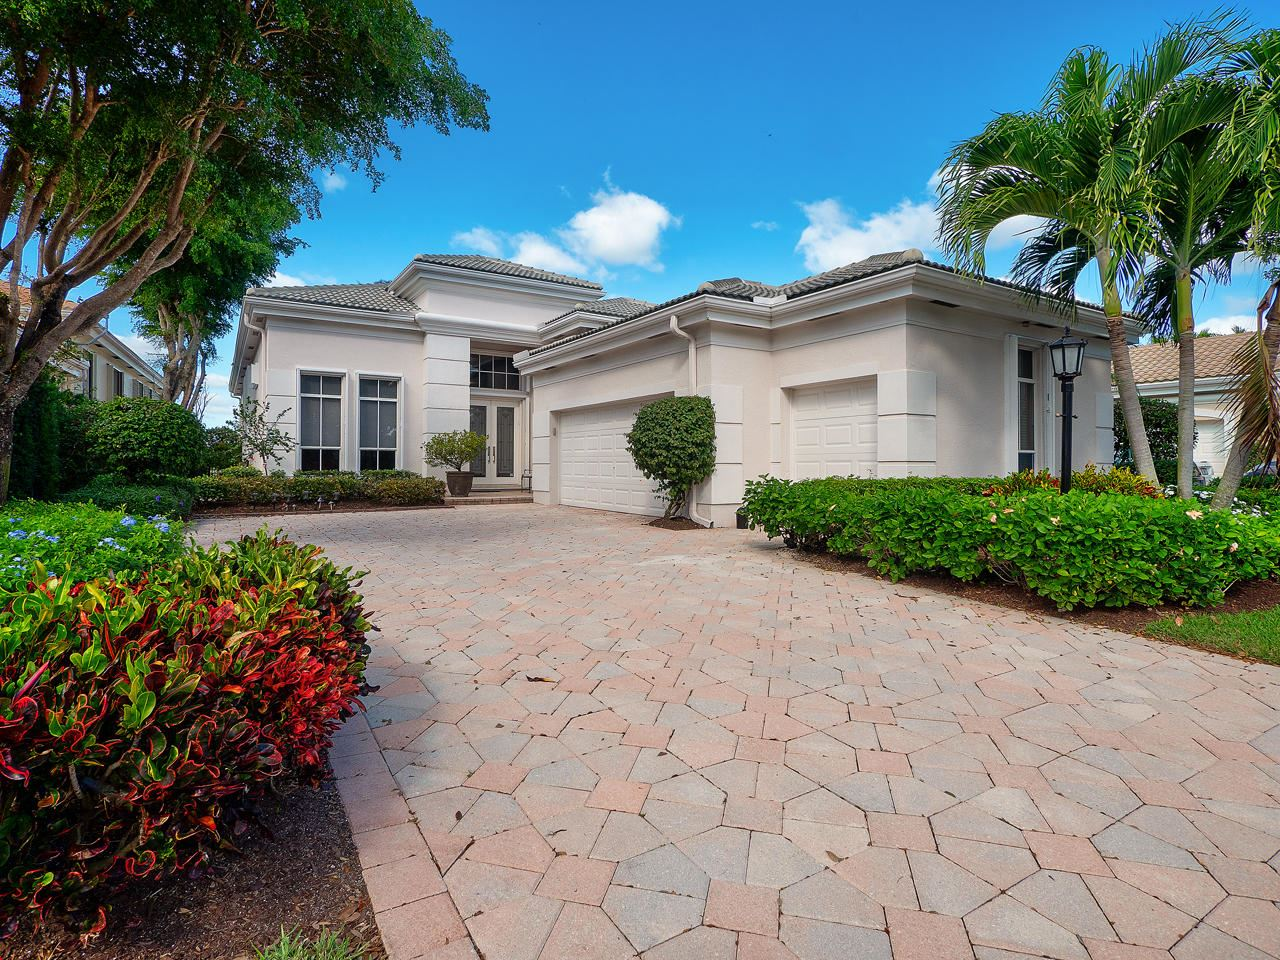 Photo of 281 Isle Way, Palm Beach Gardens, FL 33418 (MLS # RX-10589151)